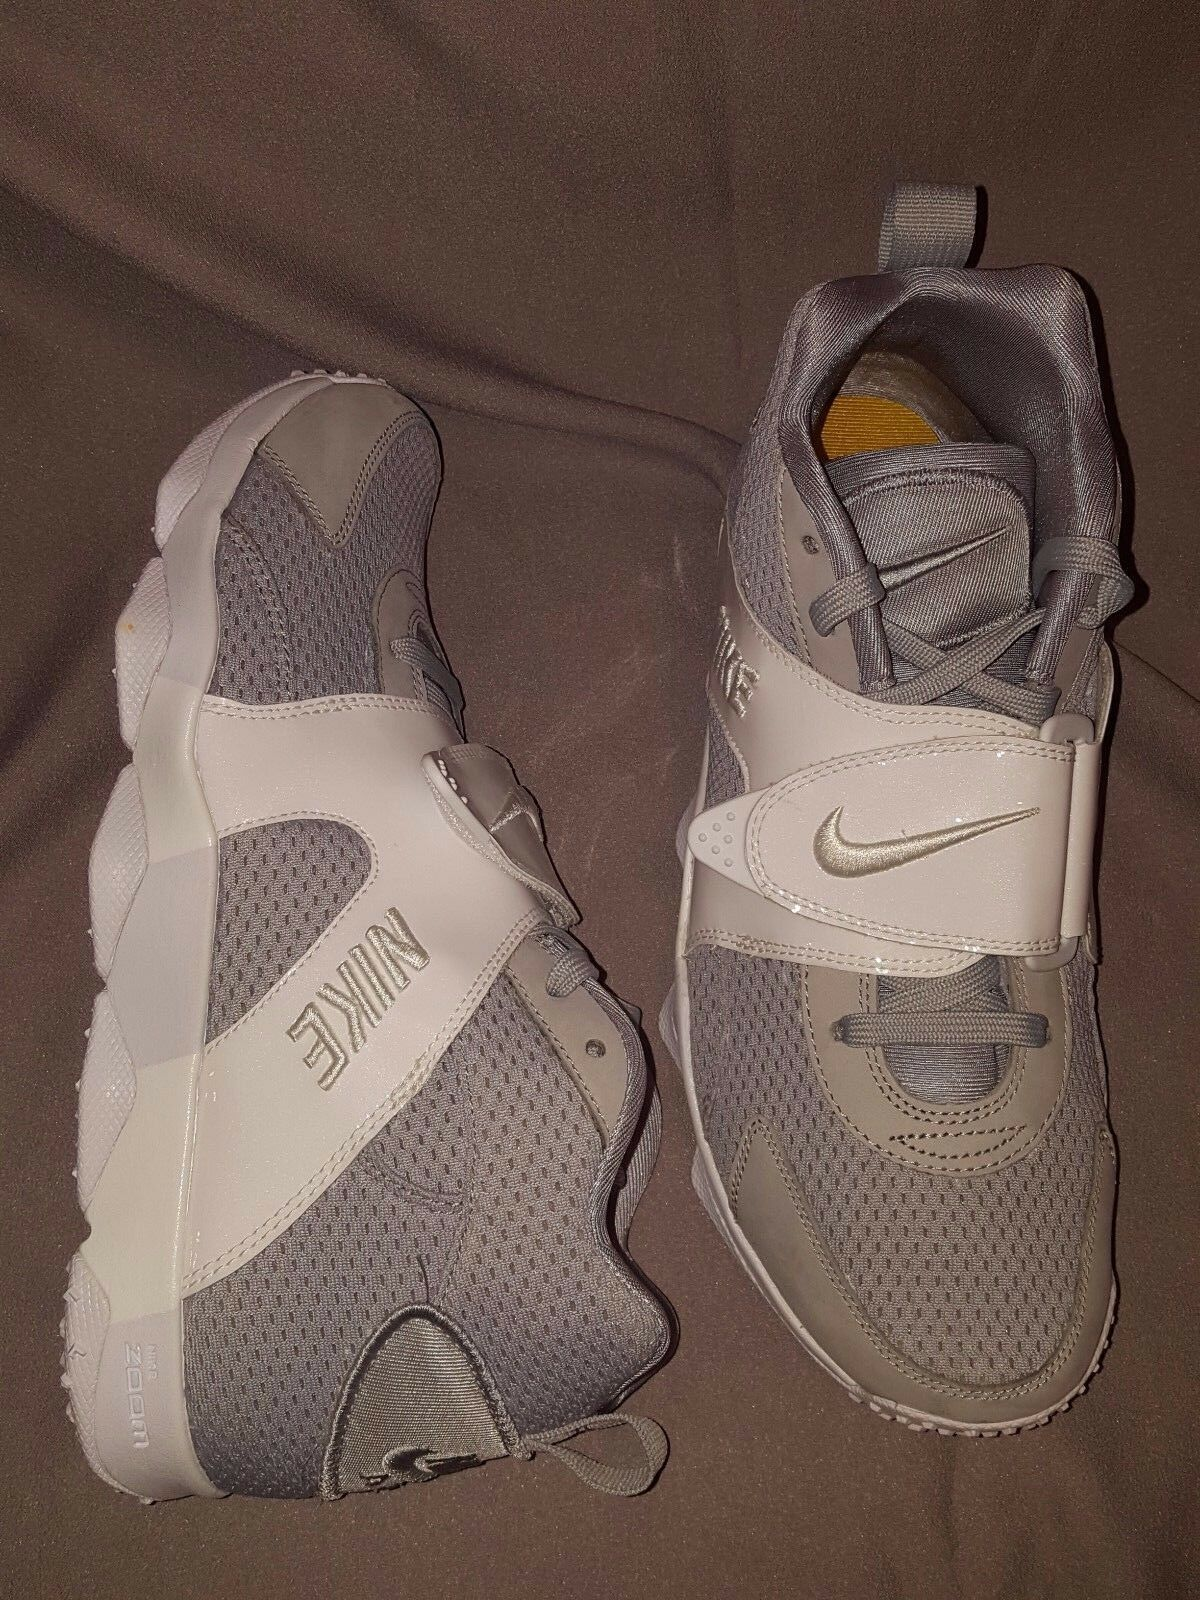 NIKE ZOOM VEER Gris blanc 844675 011 homme chaussures US 11 NEW IN BOX NIB